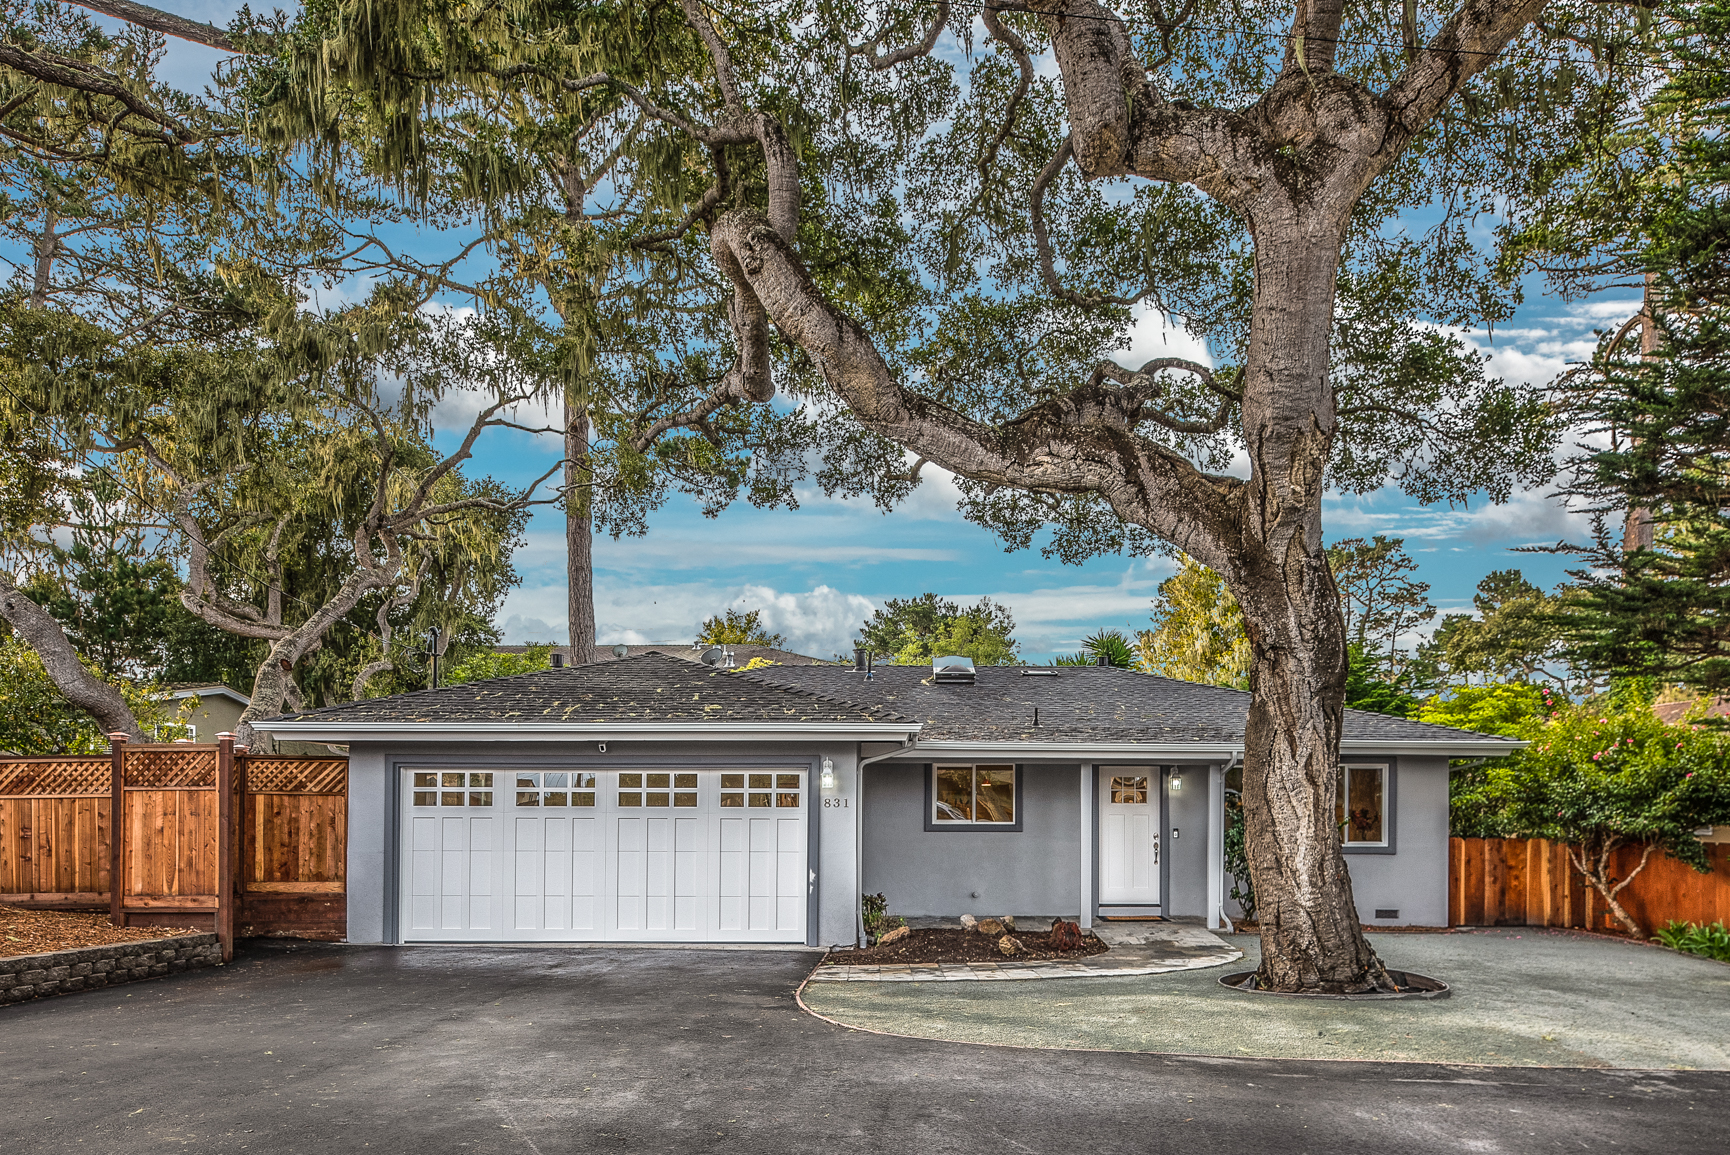 831 Marino Pines Pacific Grove 2019 Home by Monterey Peninsula Jette Fergsuon Realtor